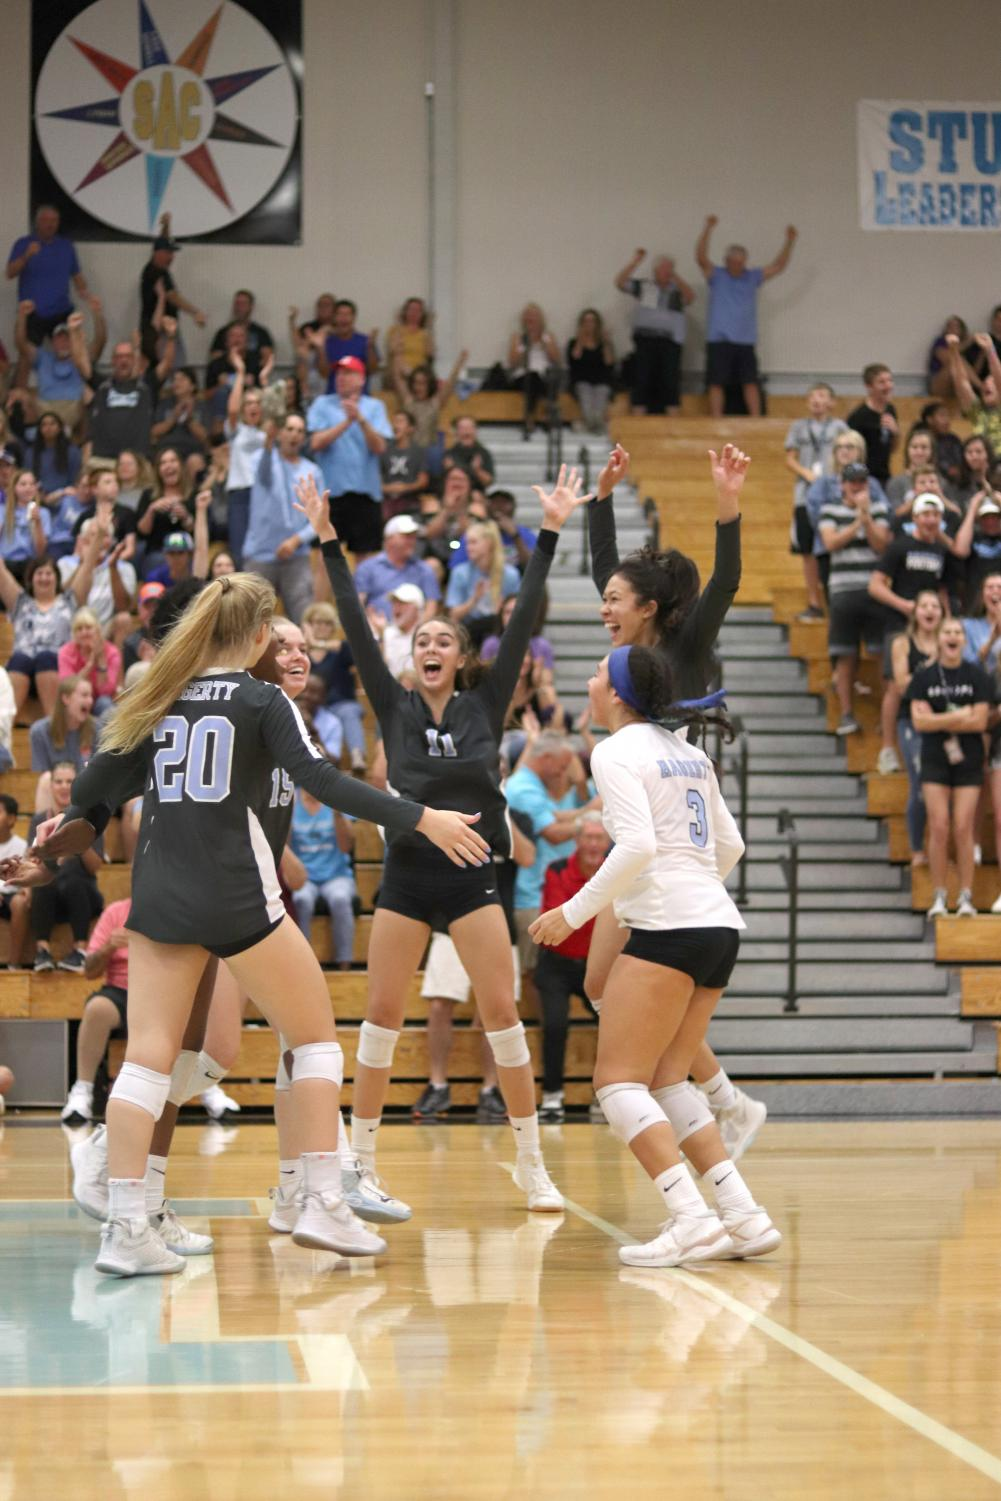 Setter Emily Lawrence, libero Alondra Garcia and others celebrate during the Plant game on Oct. 22. The team won in three sets.